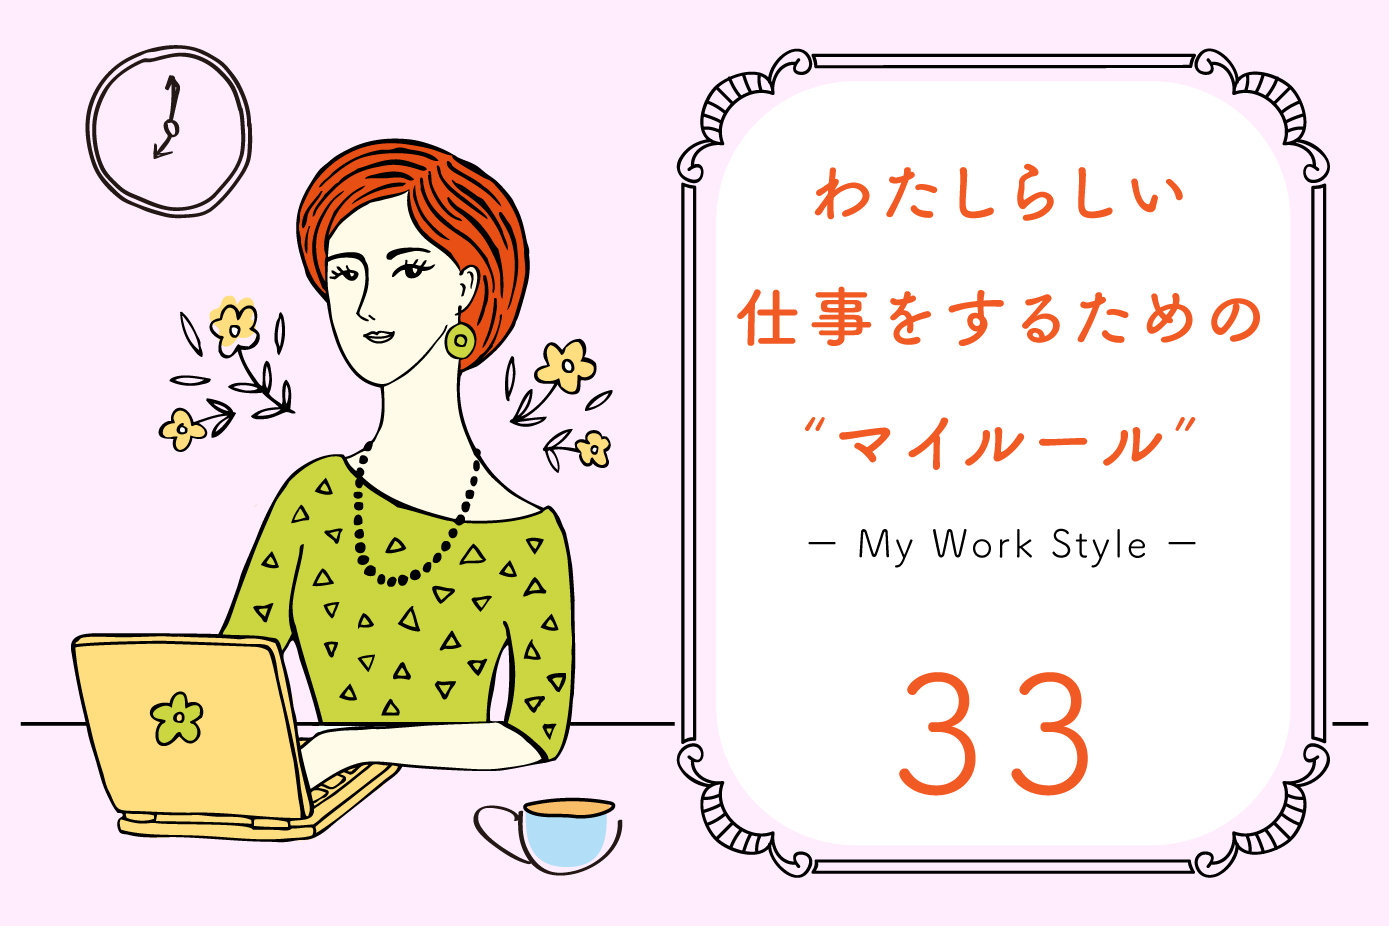 WorkStyle_マイルール_33